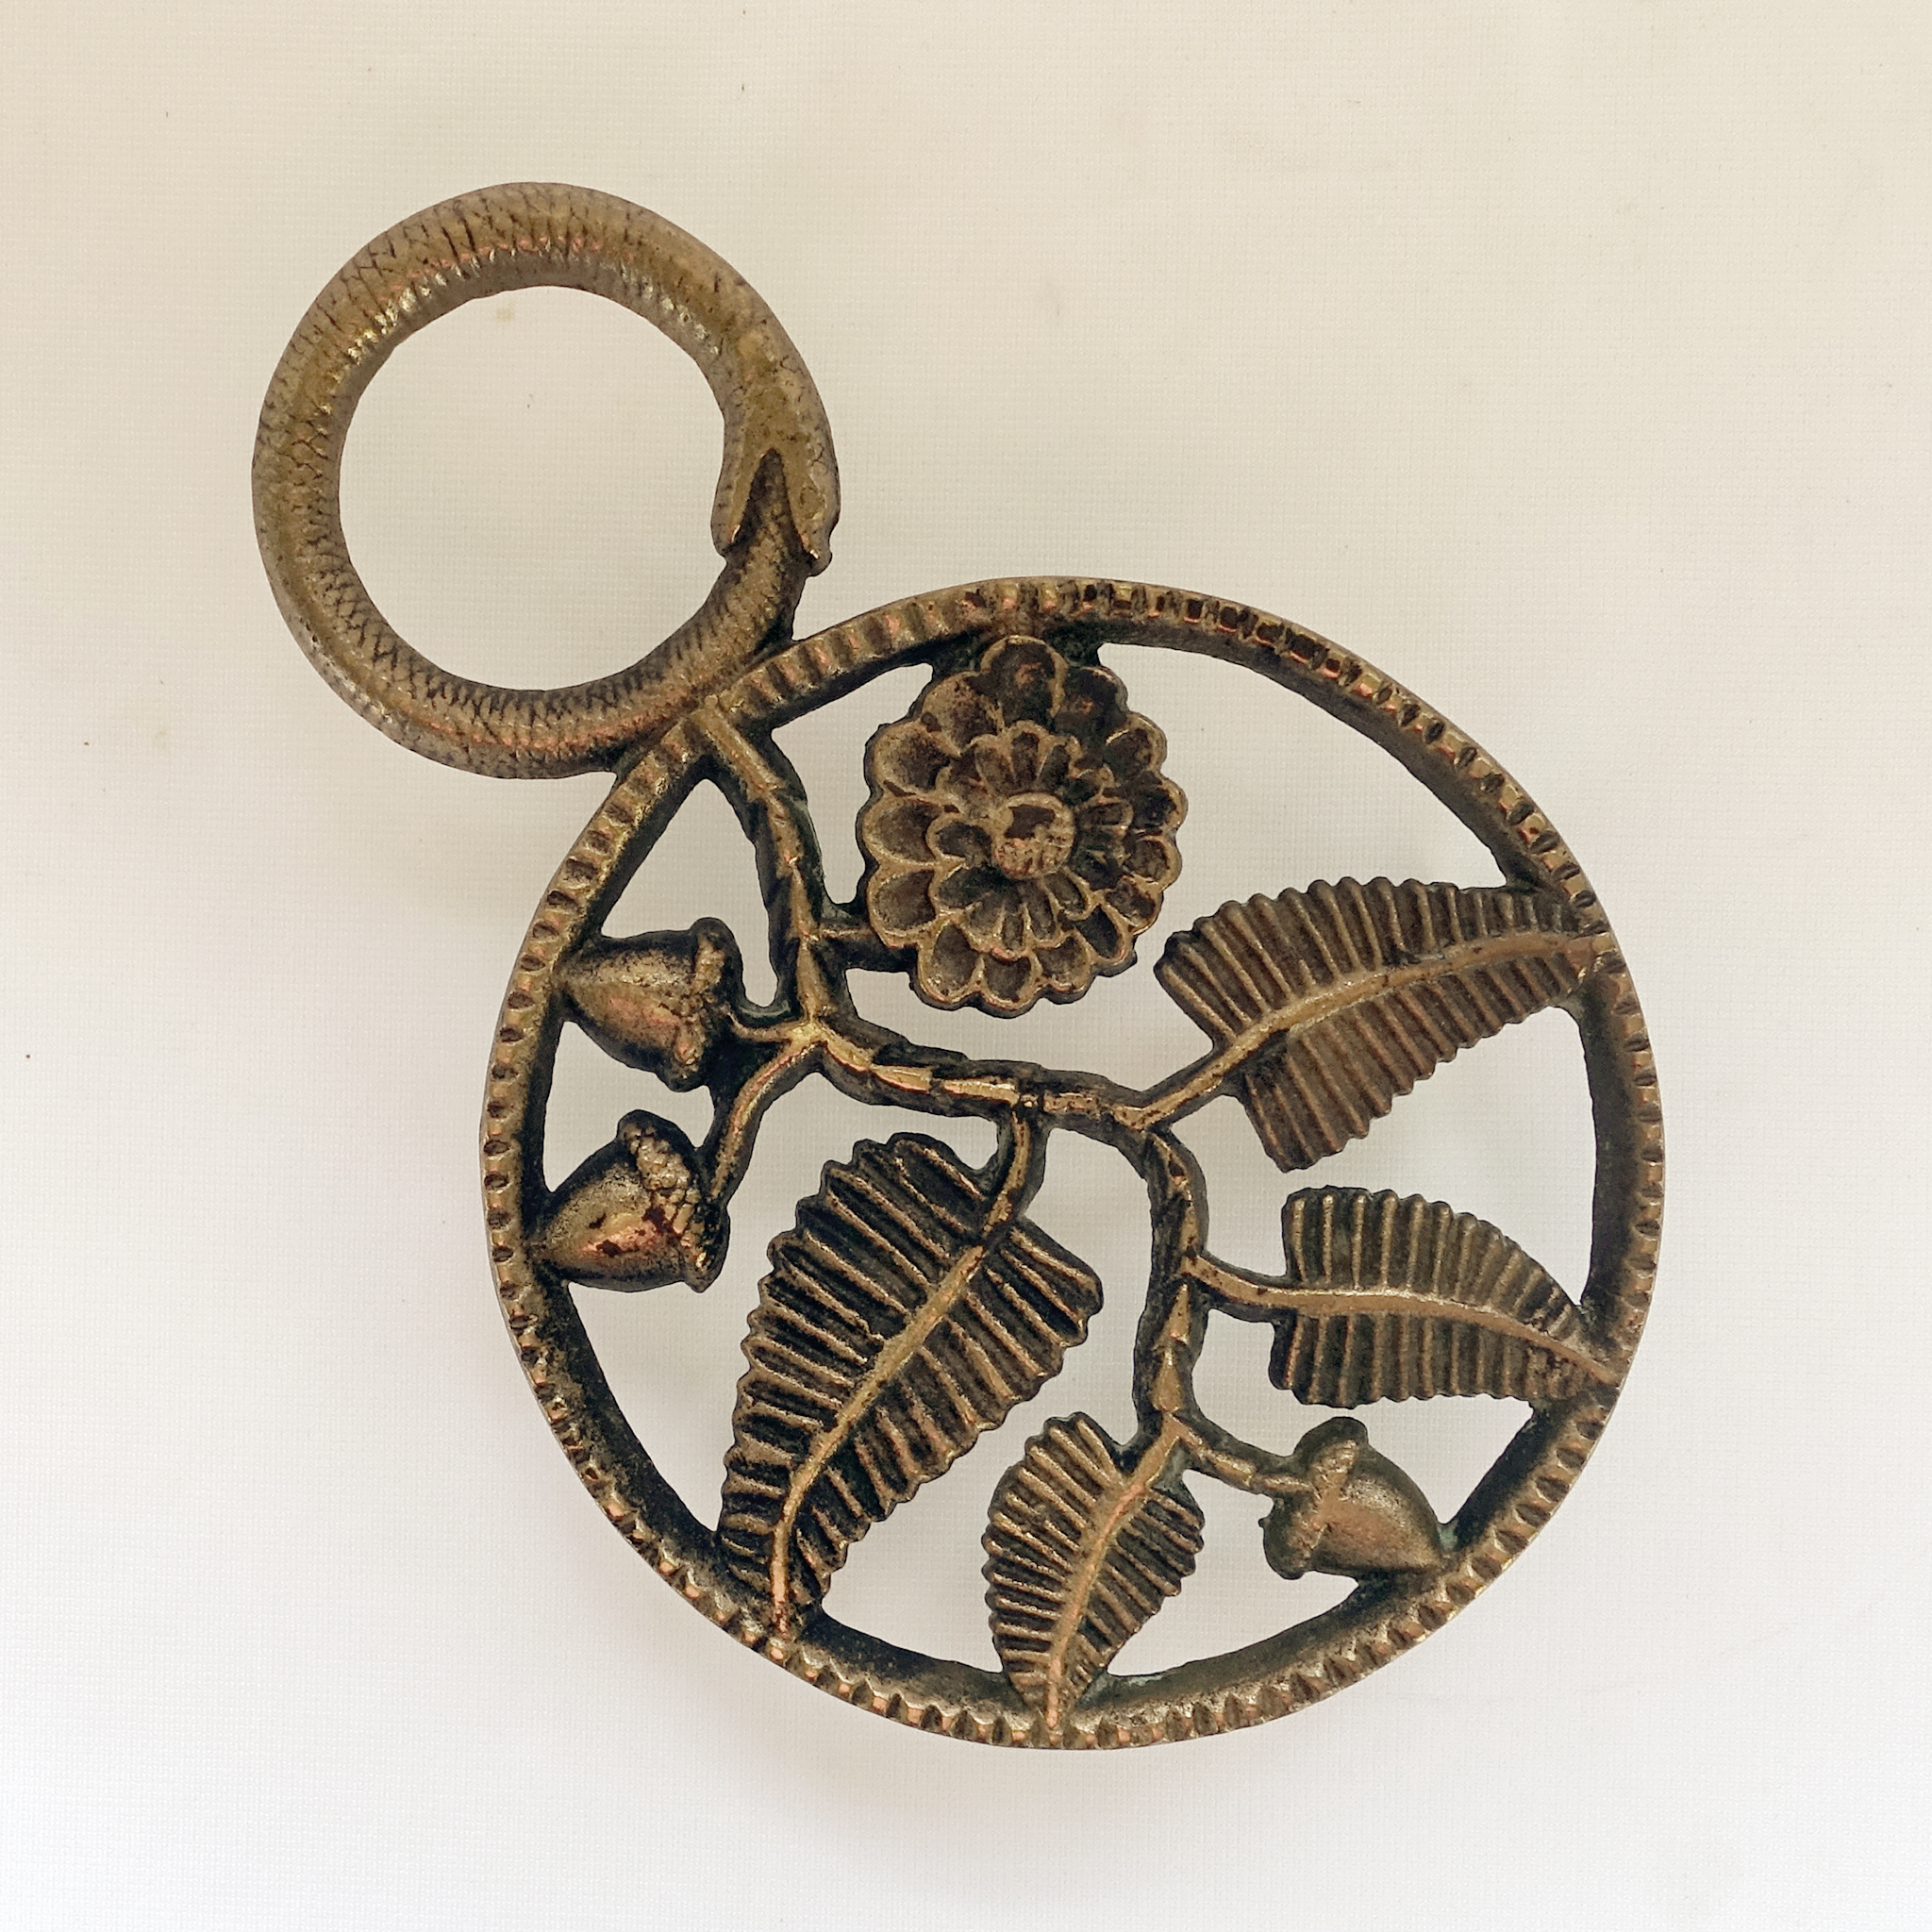 Ritzy Long Legs Suggest An Er Surface Wear Age A Trivet Trivetology I Believe This Trivet Dates To Or Ouroboros Symbolism Bent Legs Arecommensurate photos What Is A Trivet